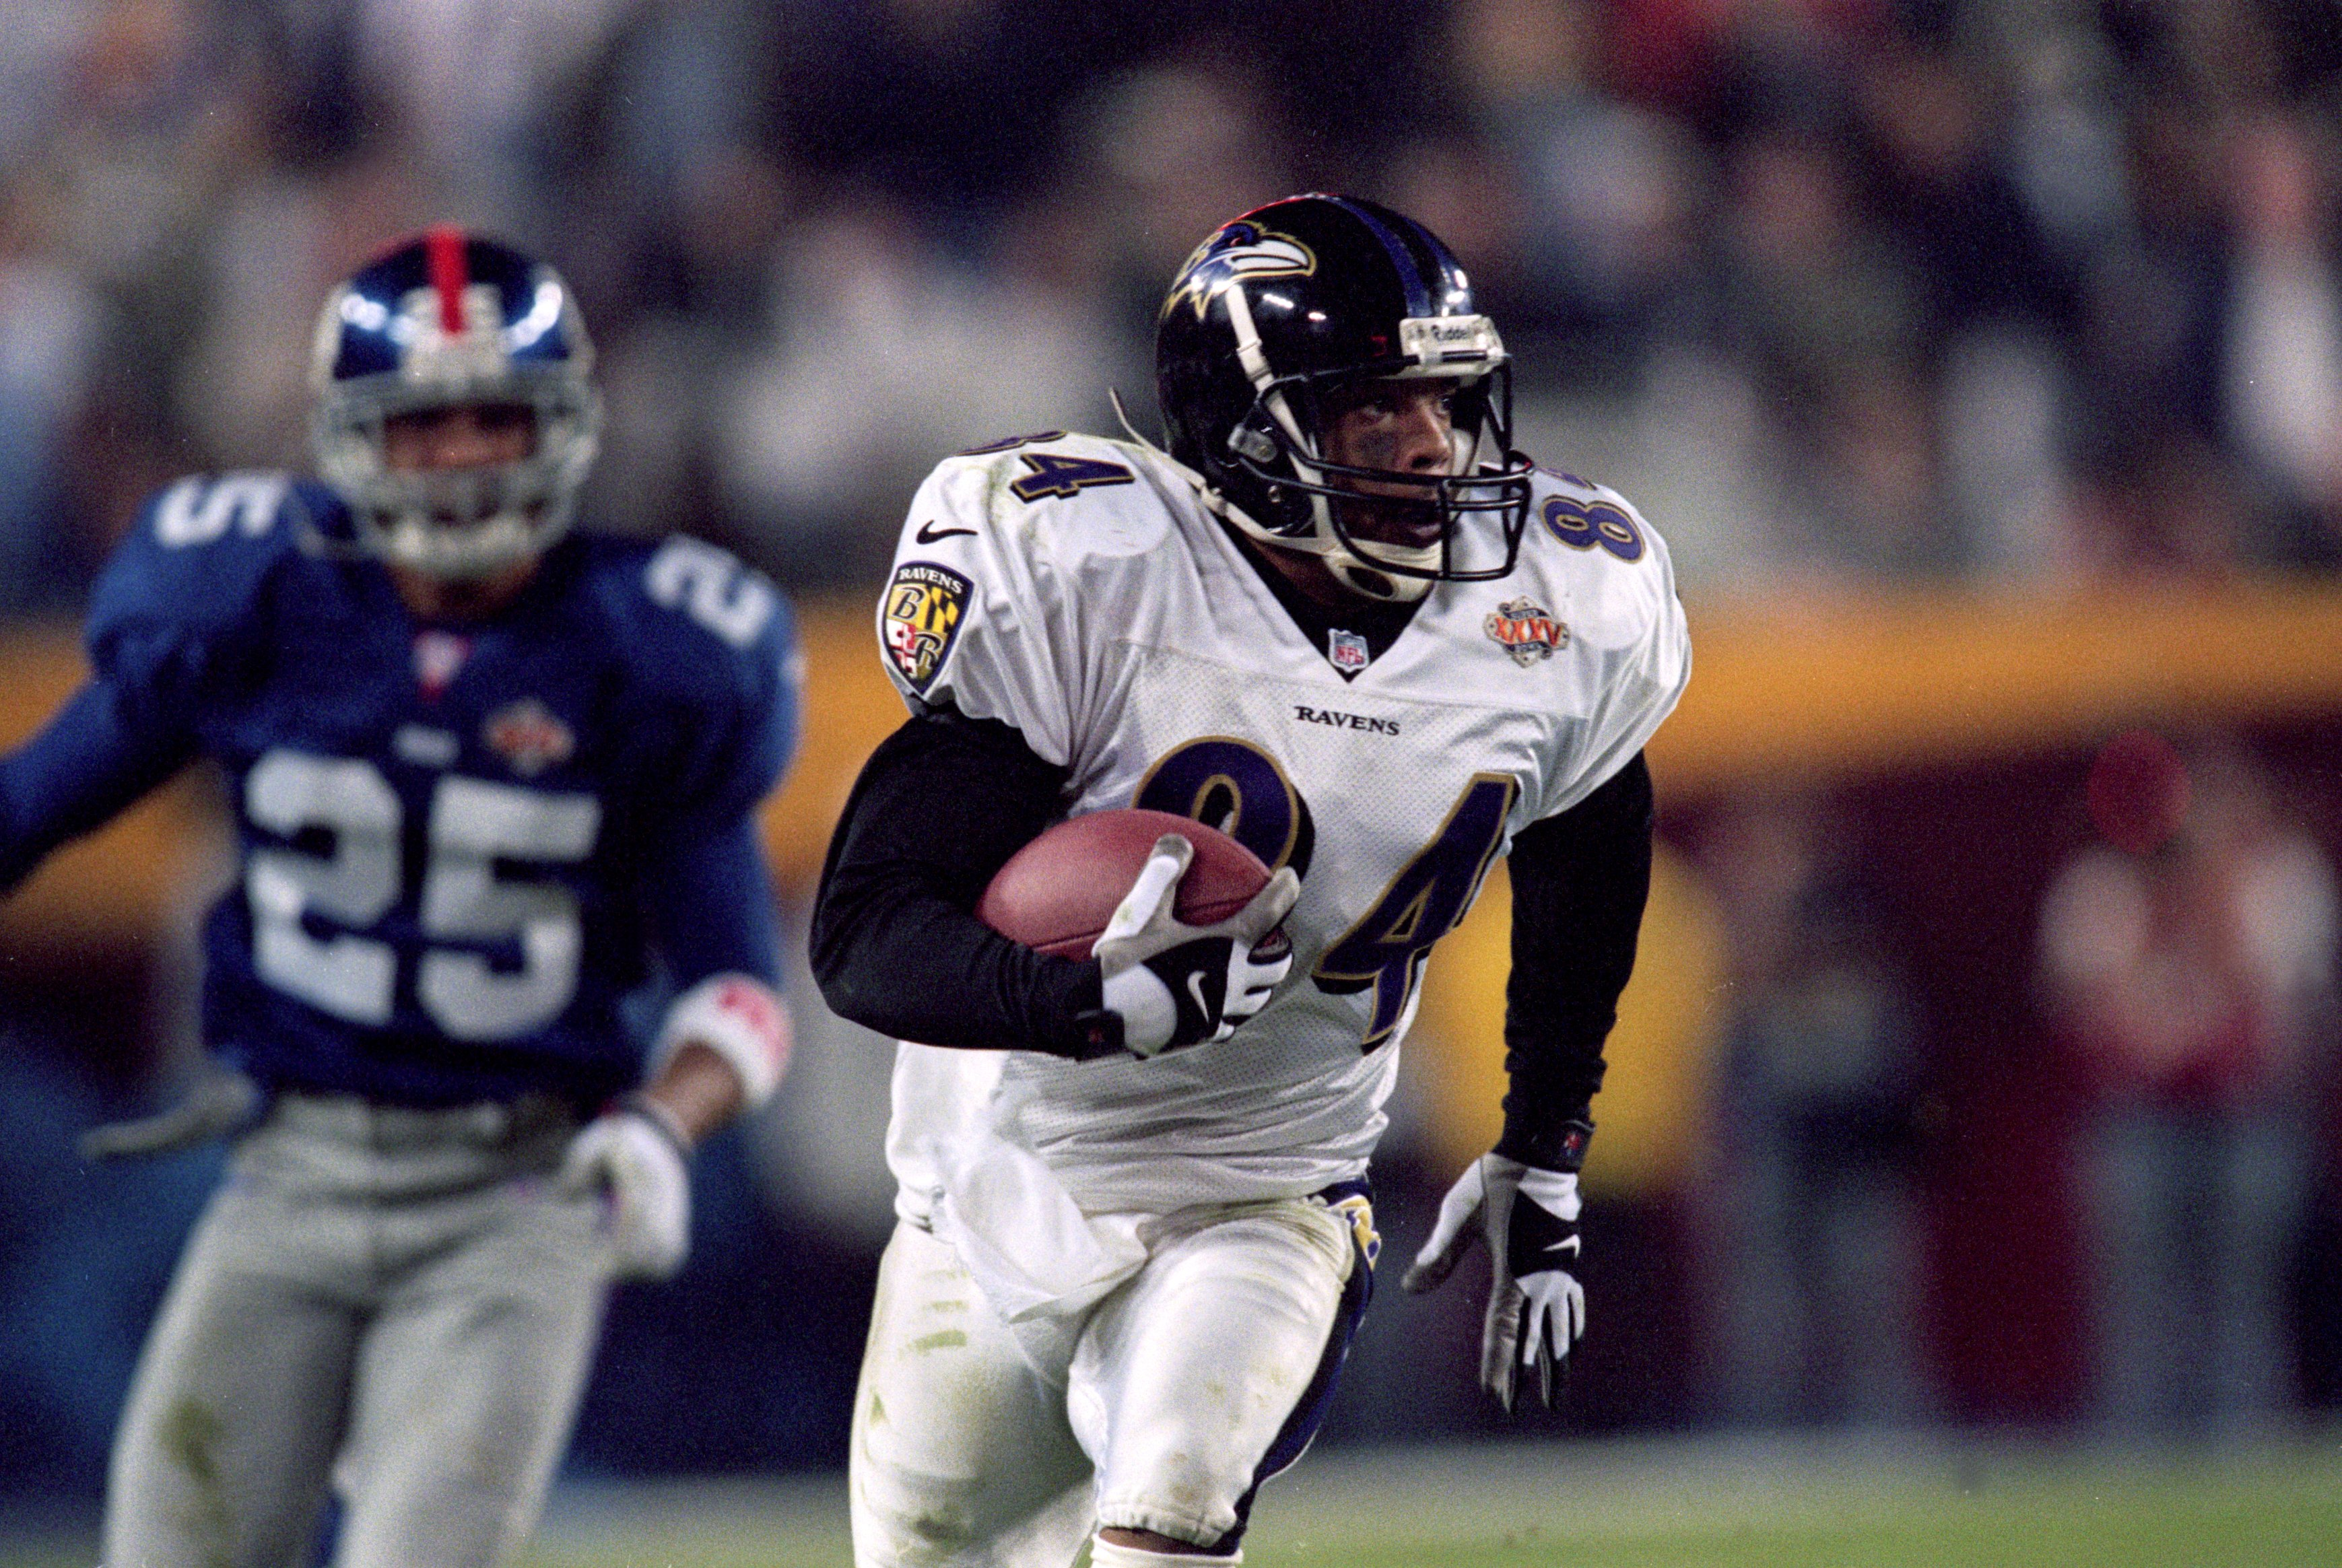 d36a4c8c3 28 Jan 2001: Jermaine Lewis #84 of the Baltimore Ravens runs with the ball